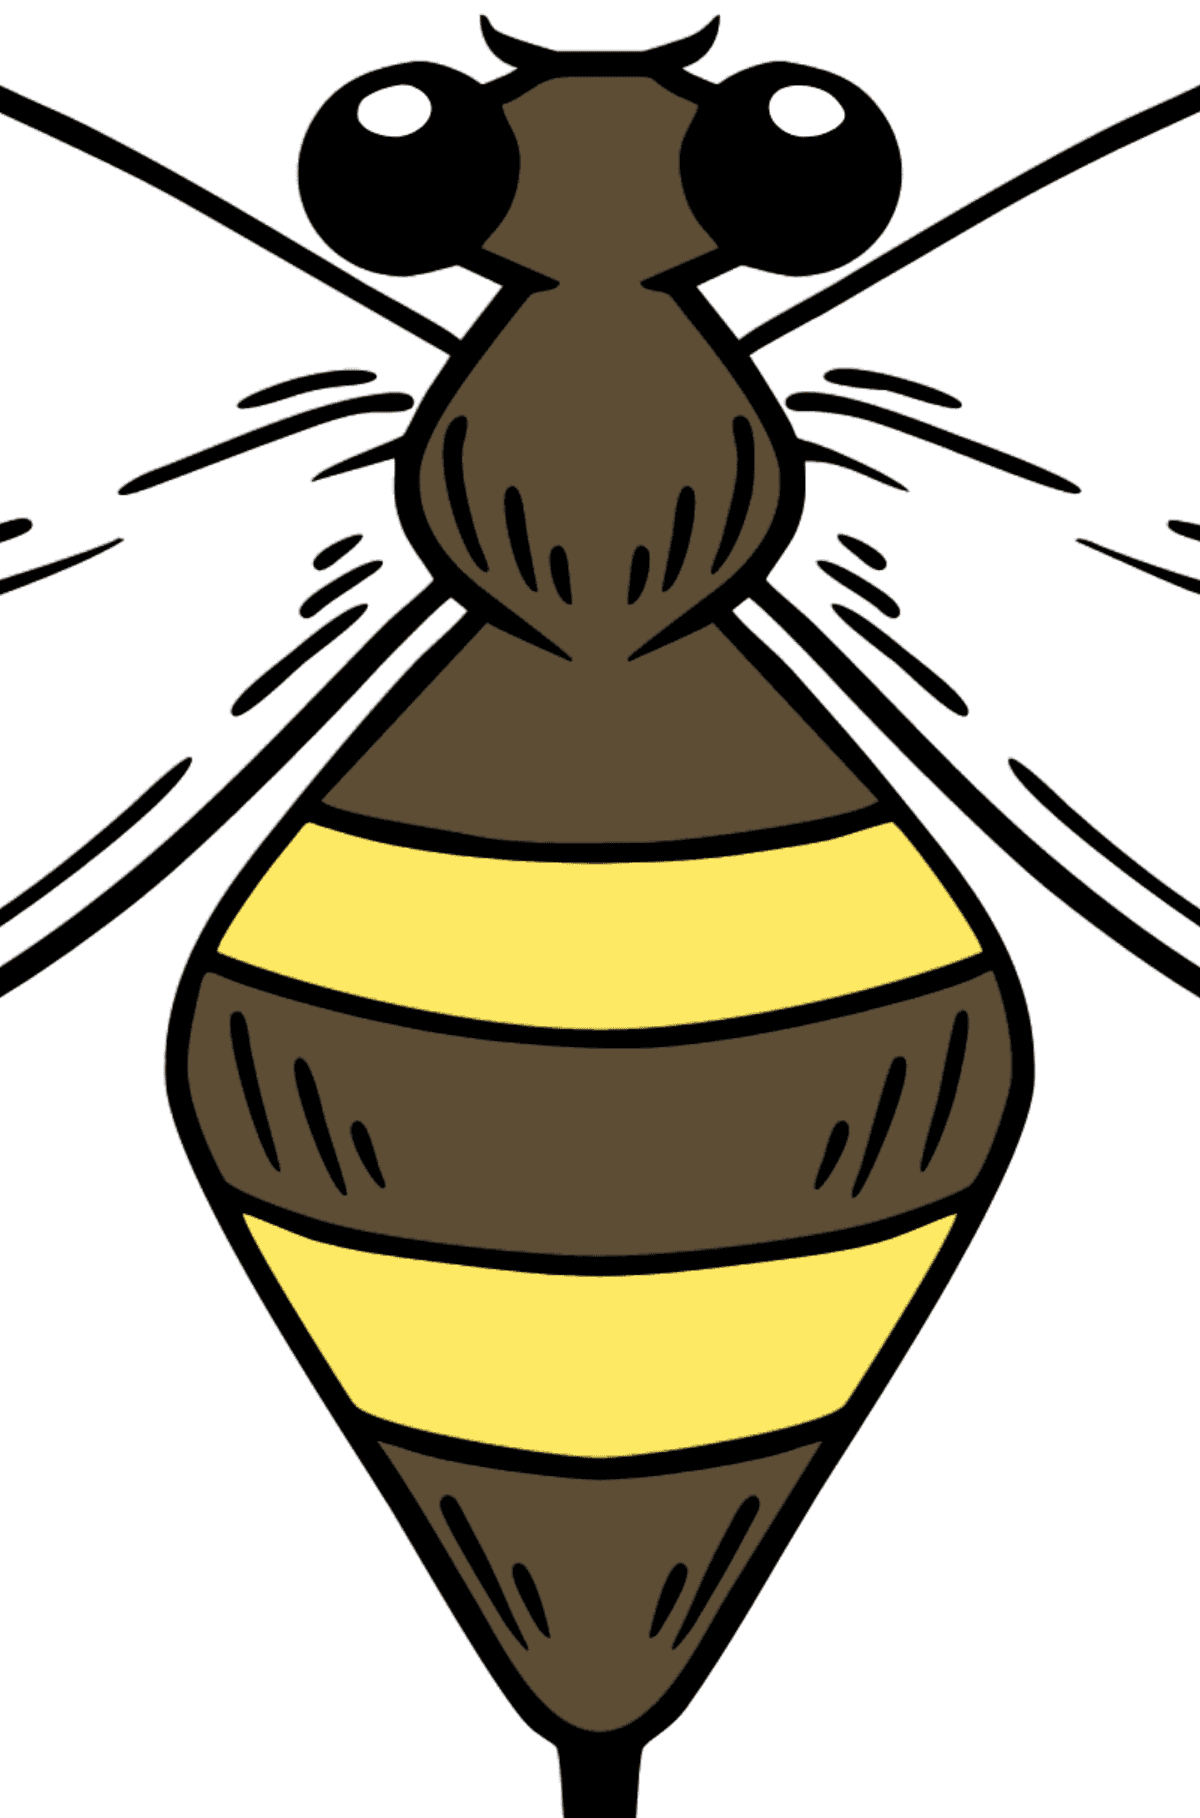 Wasp coloring page - Coloring by Numbers for Kids